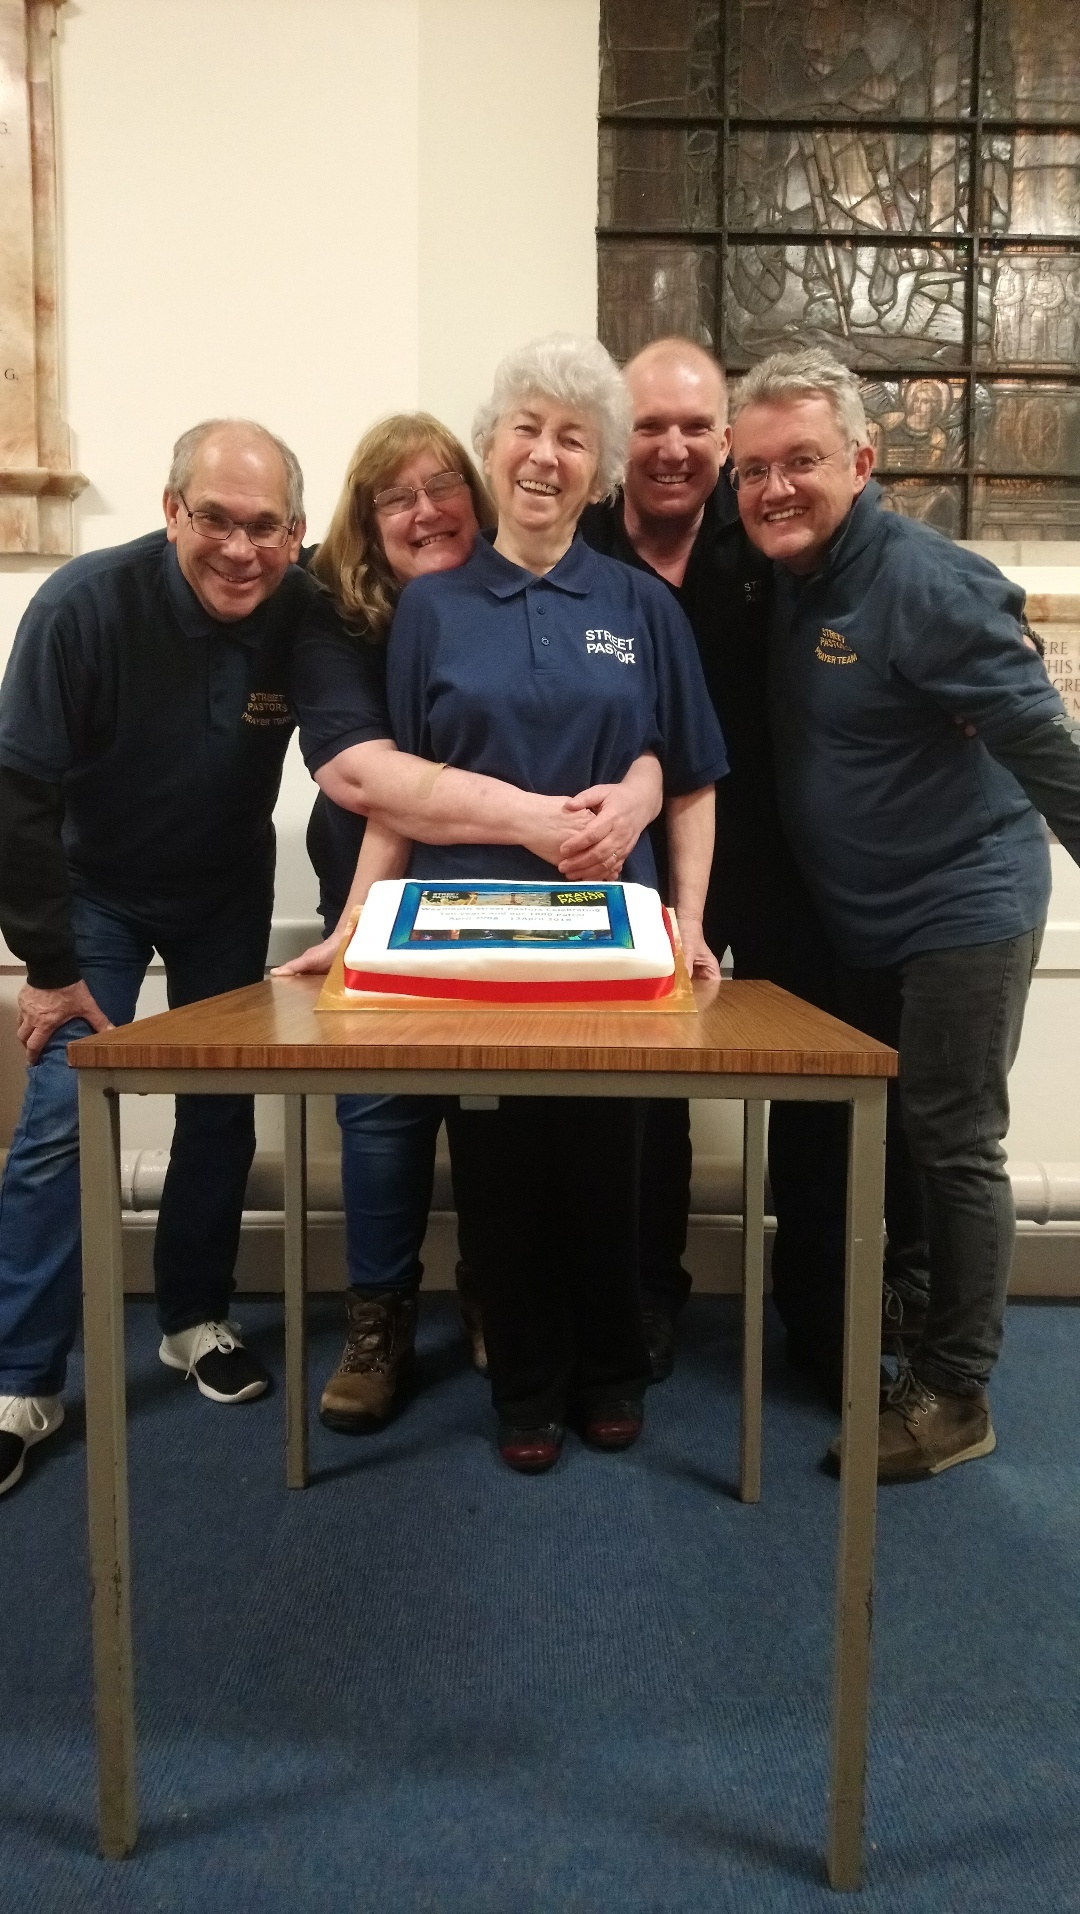 Peter Tripp, Eleanor Dymott, Catherine Sullivan, Dave Cresswell and Dave Rees the Weymouth streetpastors co-ordinator